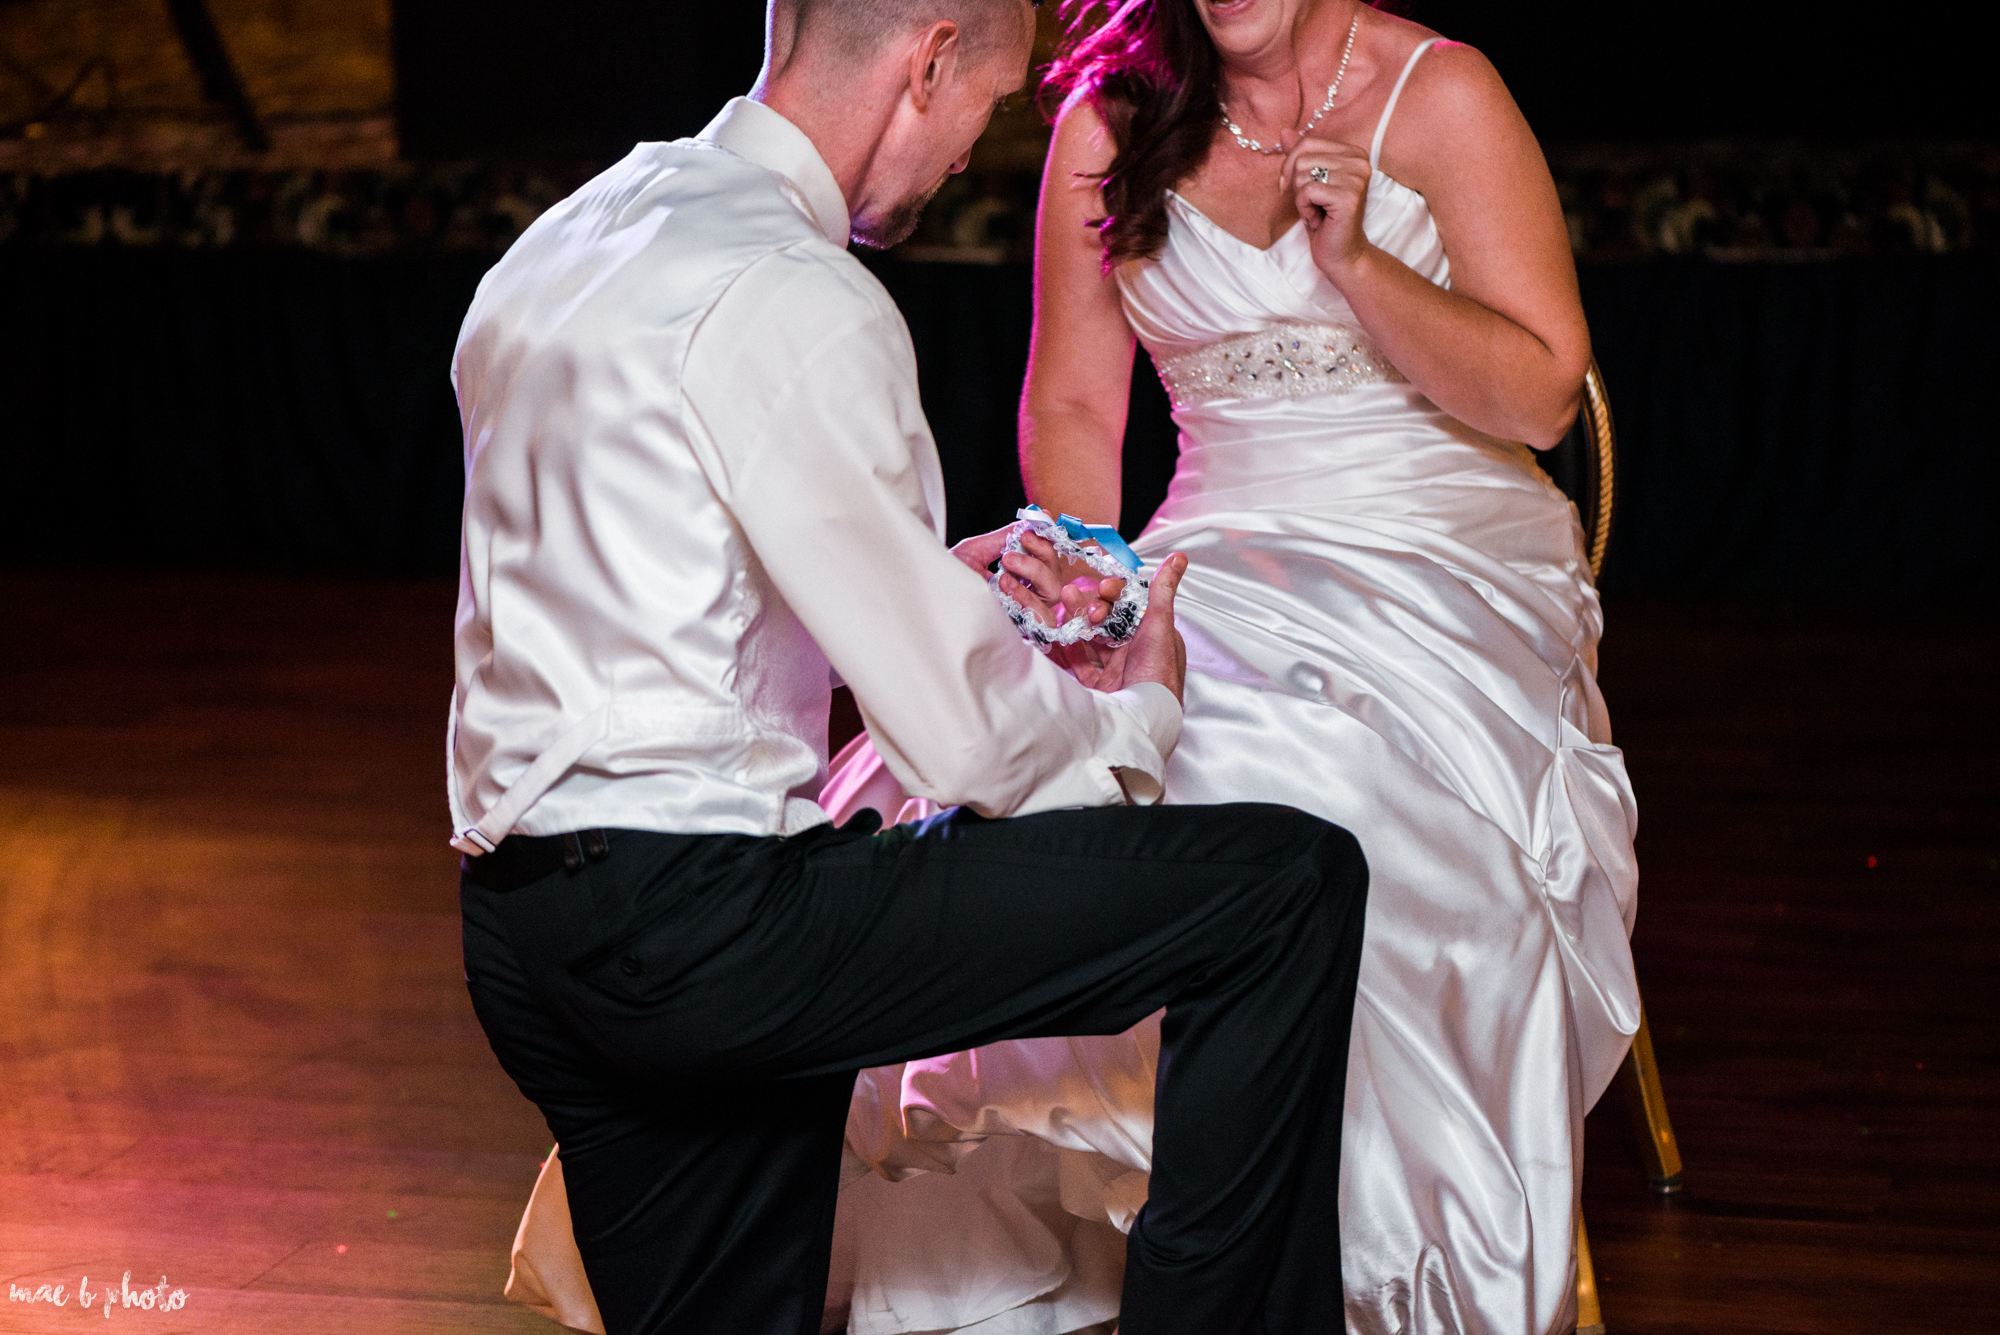 tracey and aaron's personal fall wedding at tiffany's banquet center in brookfield ohio-108.jpg